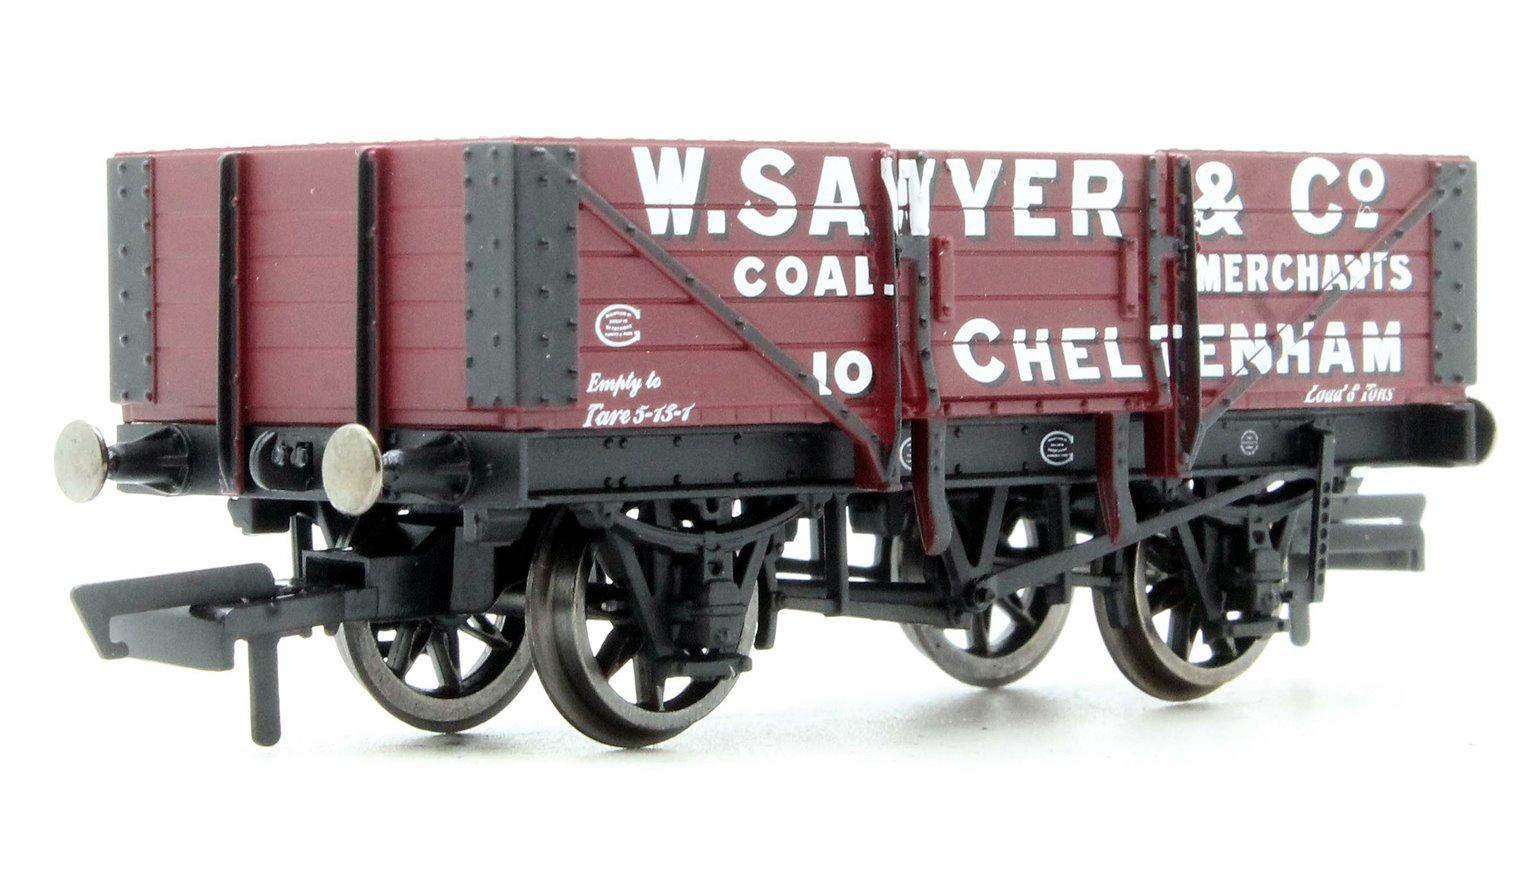 5 Plank Wagon, W. Sawyer